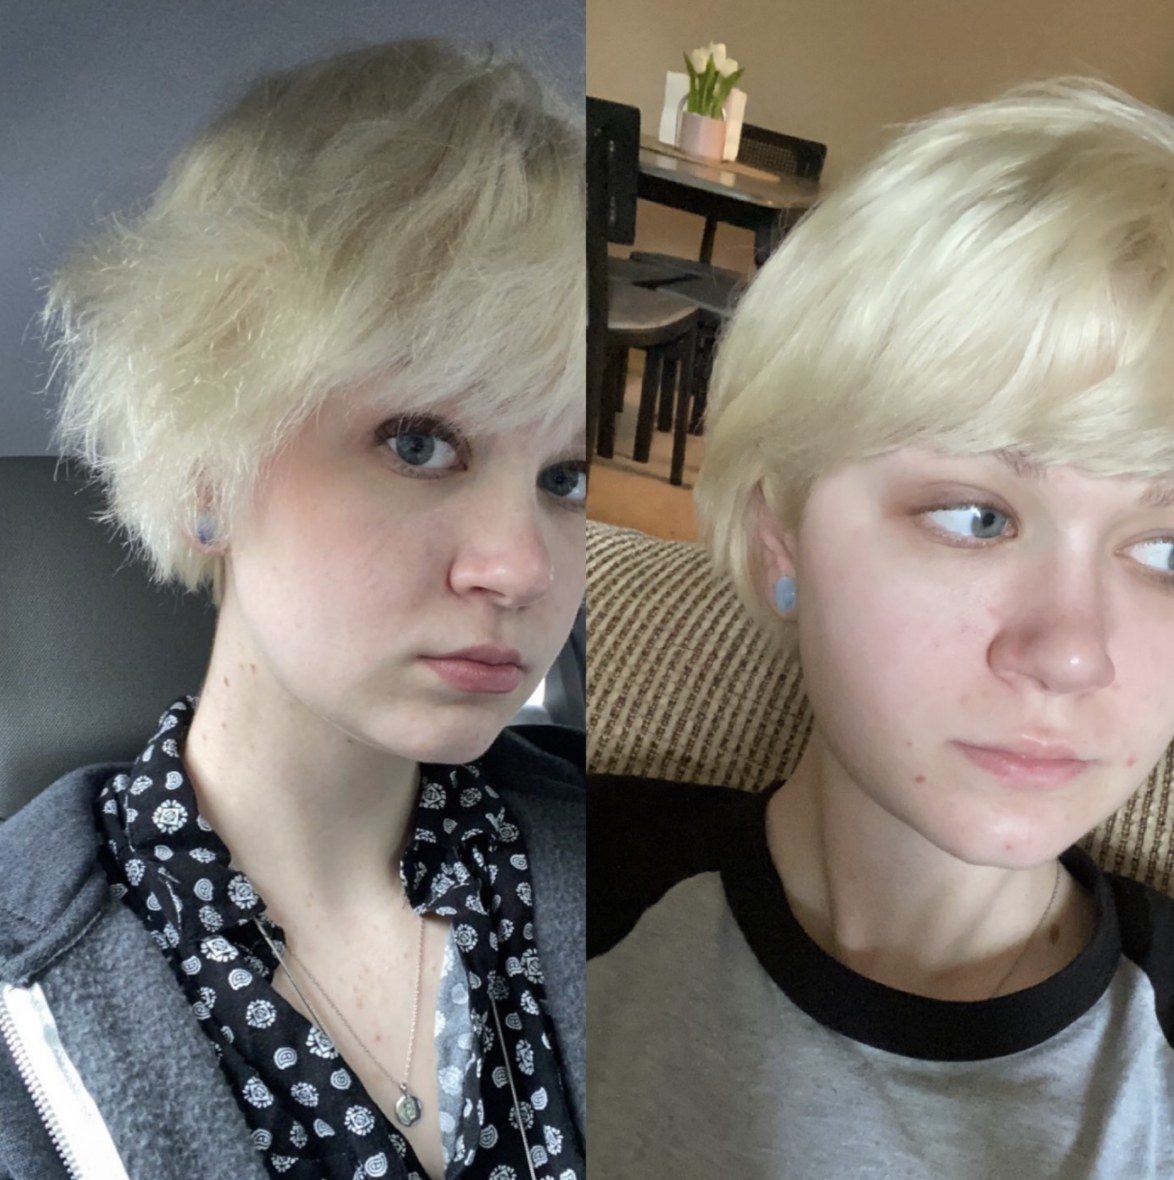 reviewer showing their hair before and after using the hair treatment